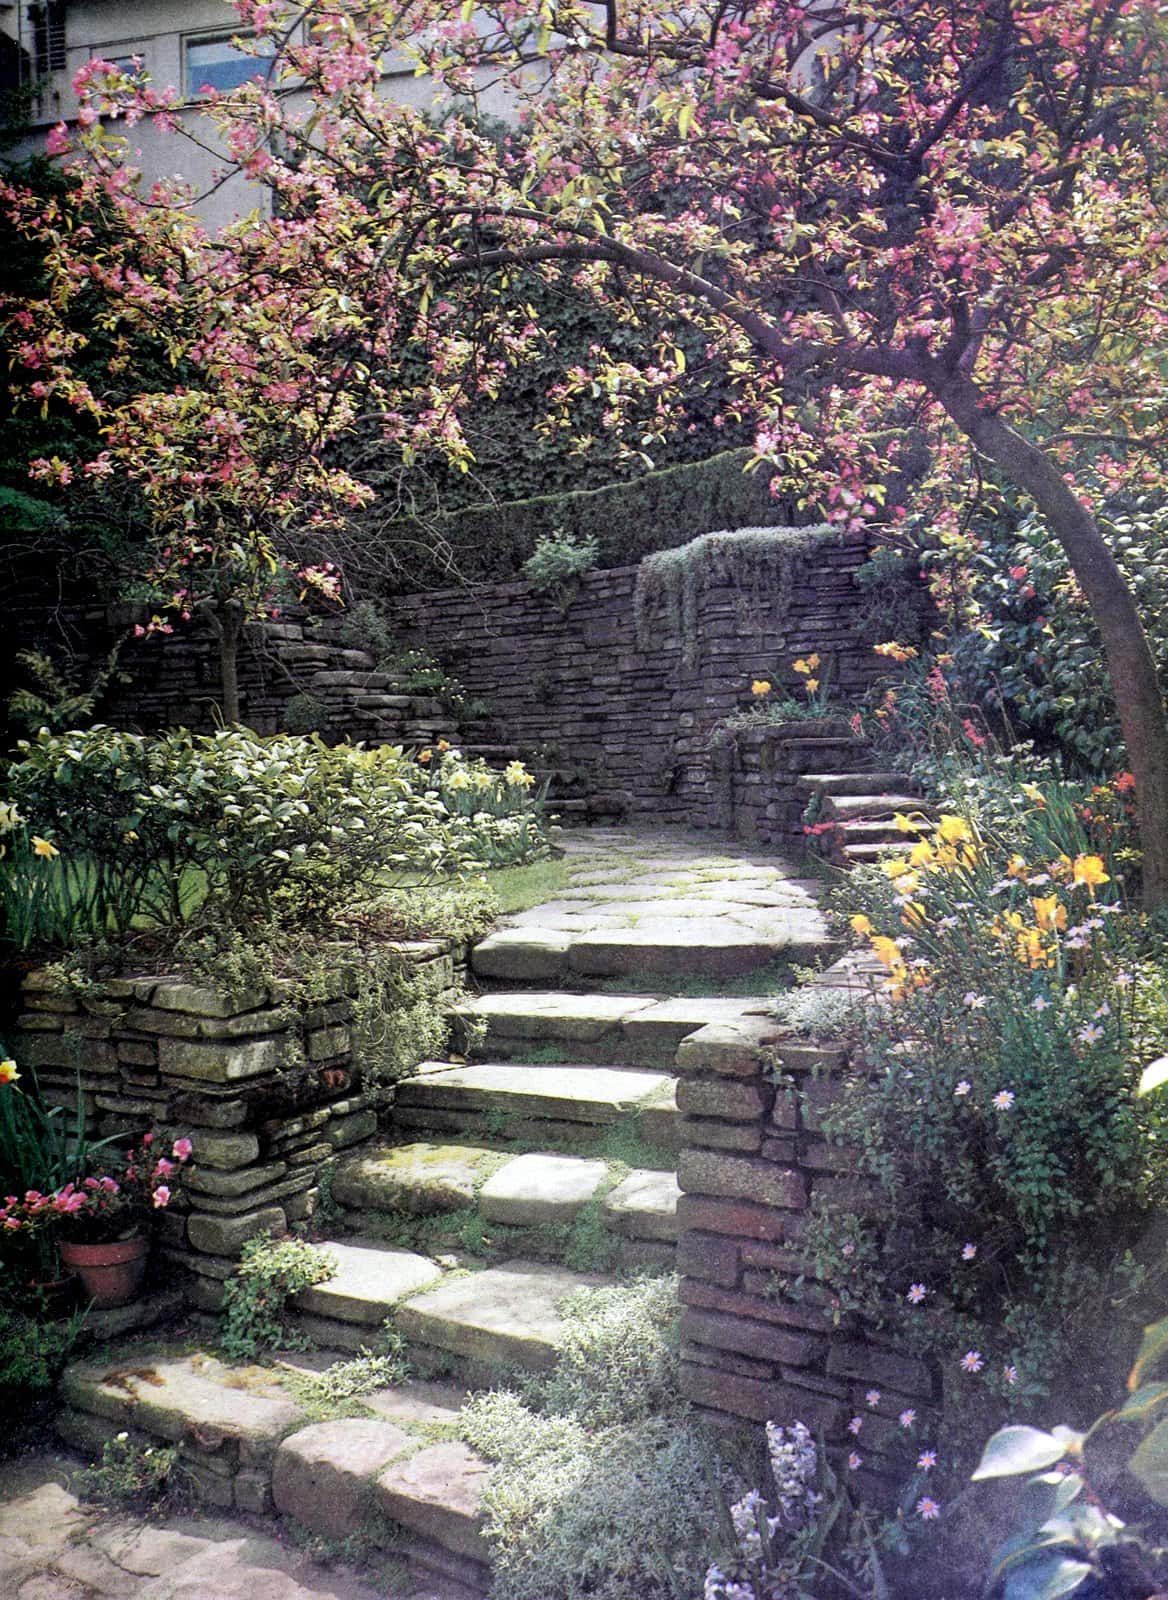 A walled garden overflowing with flowers and plants (1962)